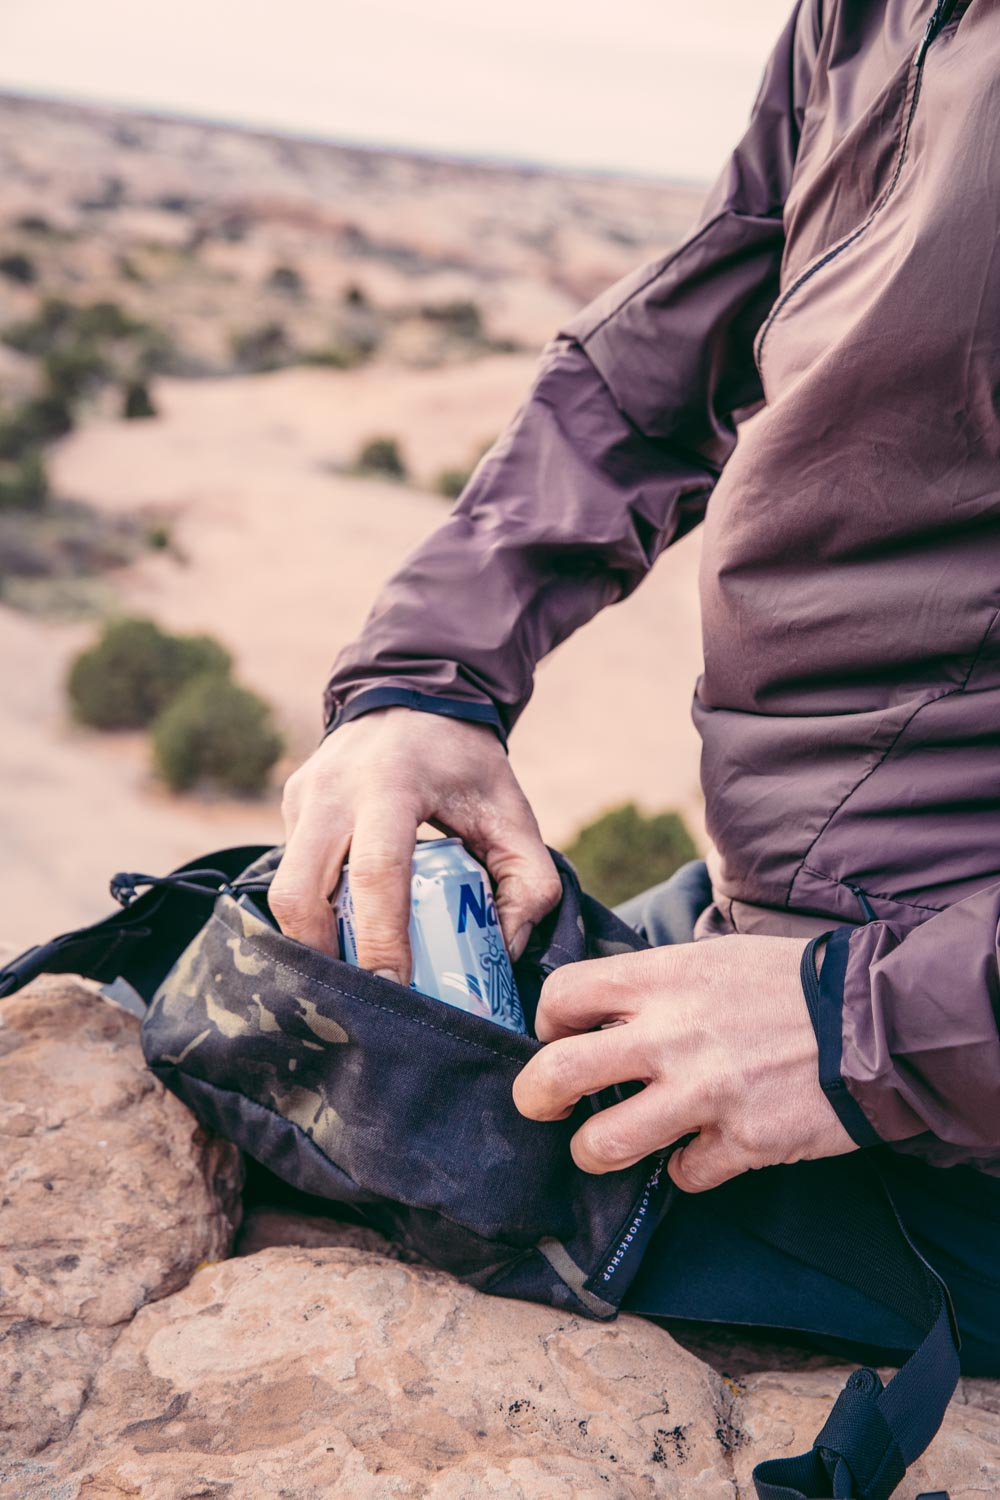 Field Test by Mission Workshop with James Adamson and the Axis Modular Waist Pack